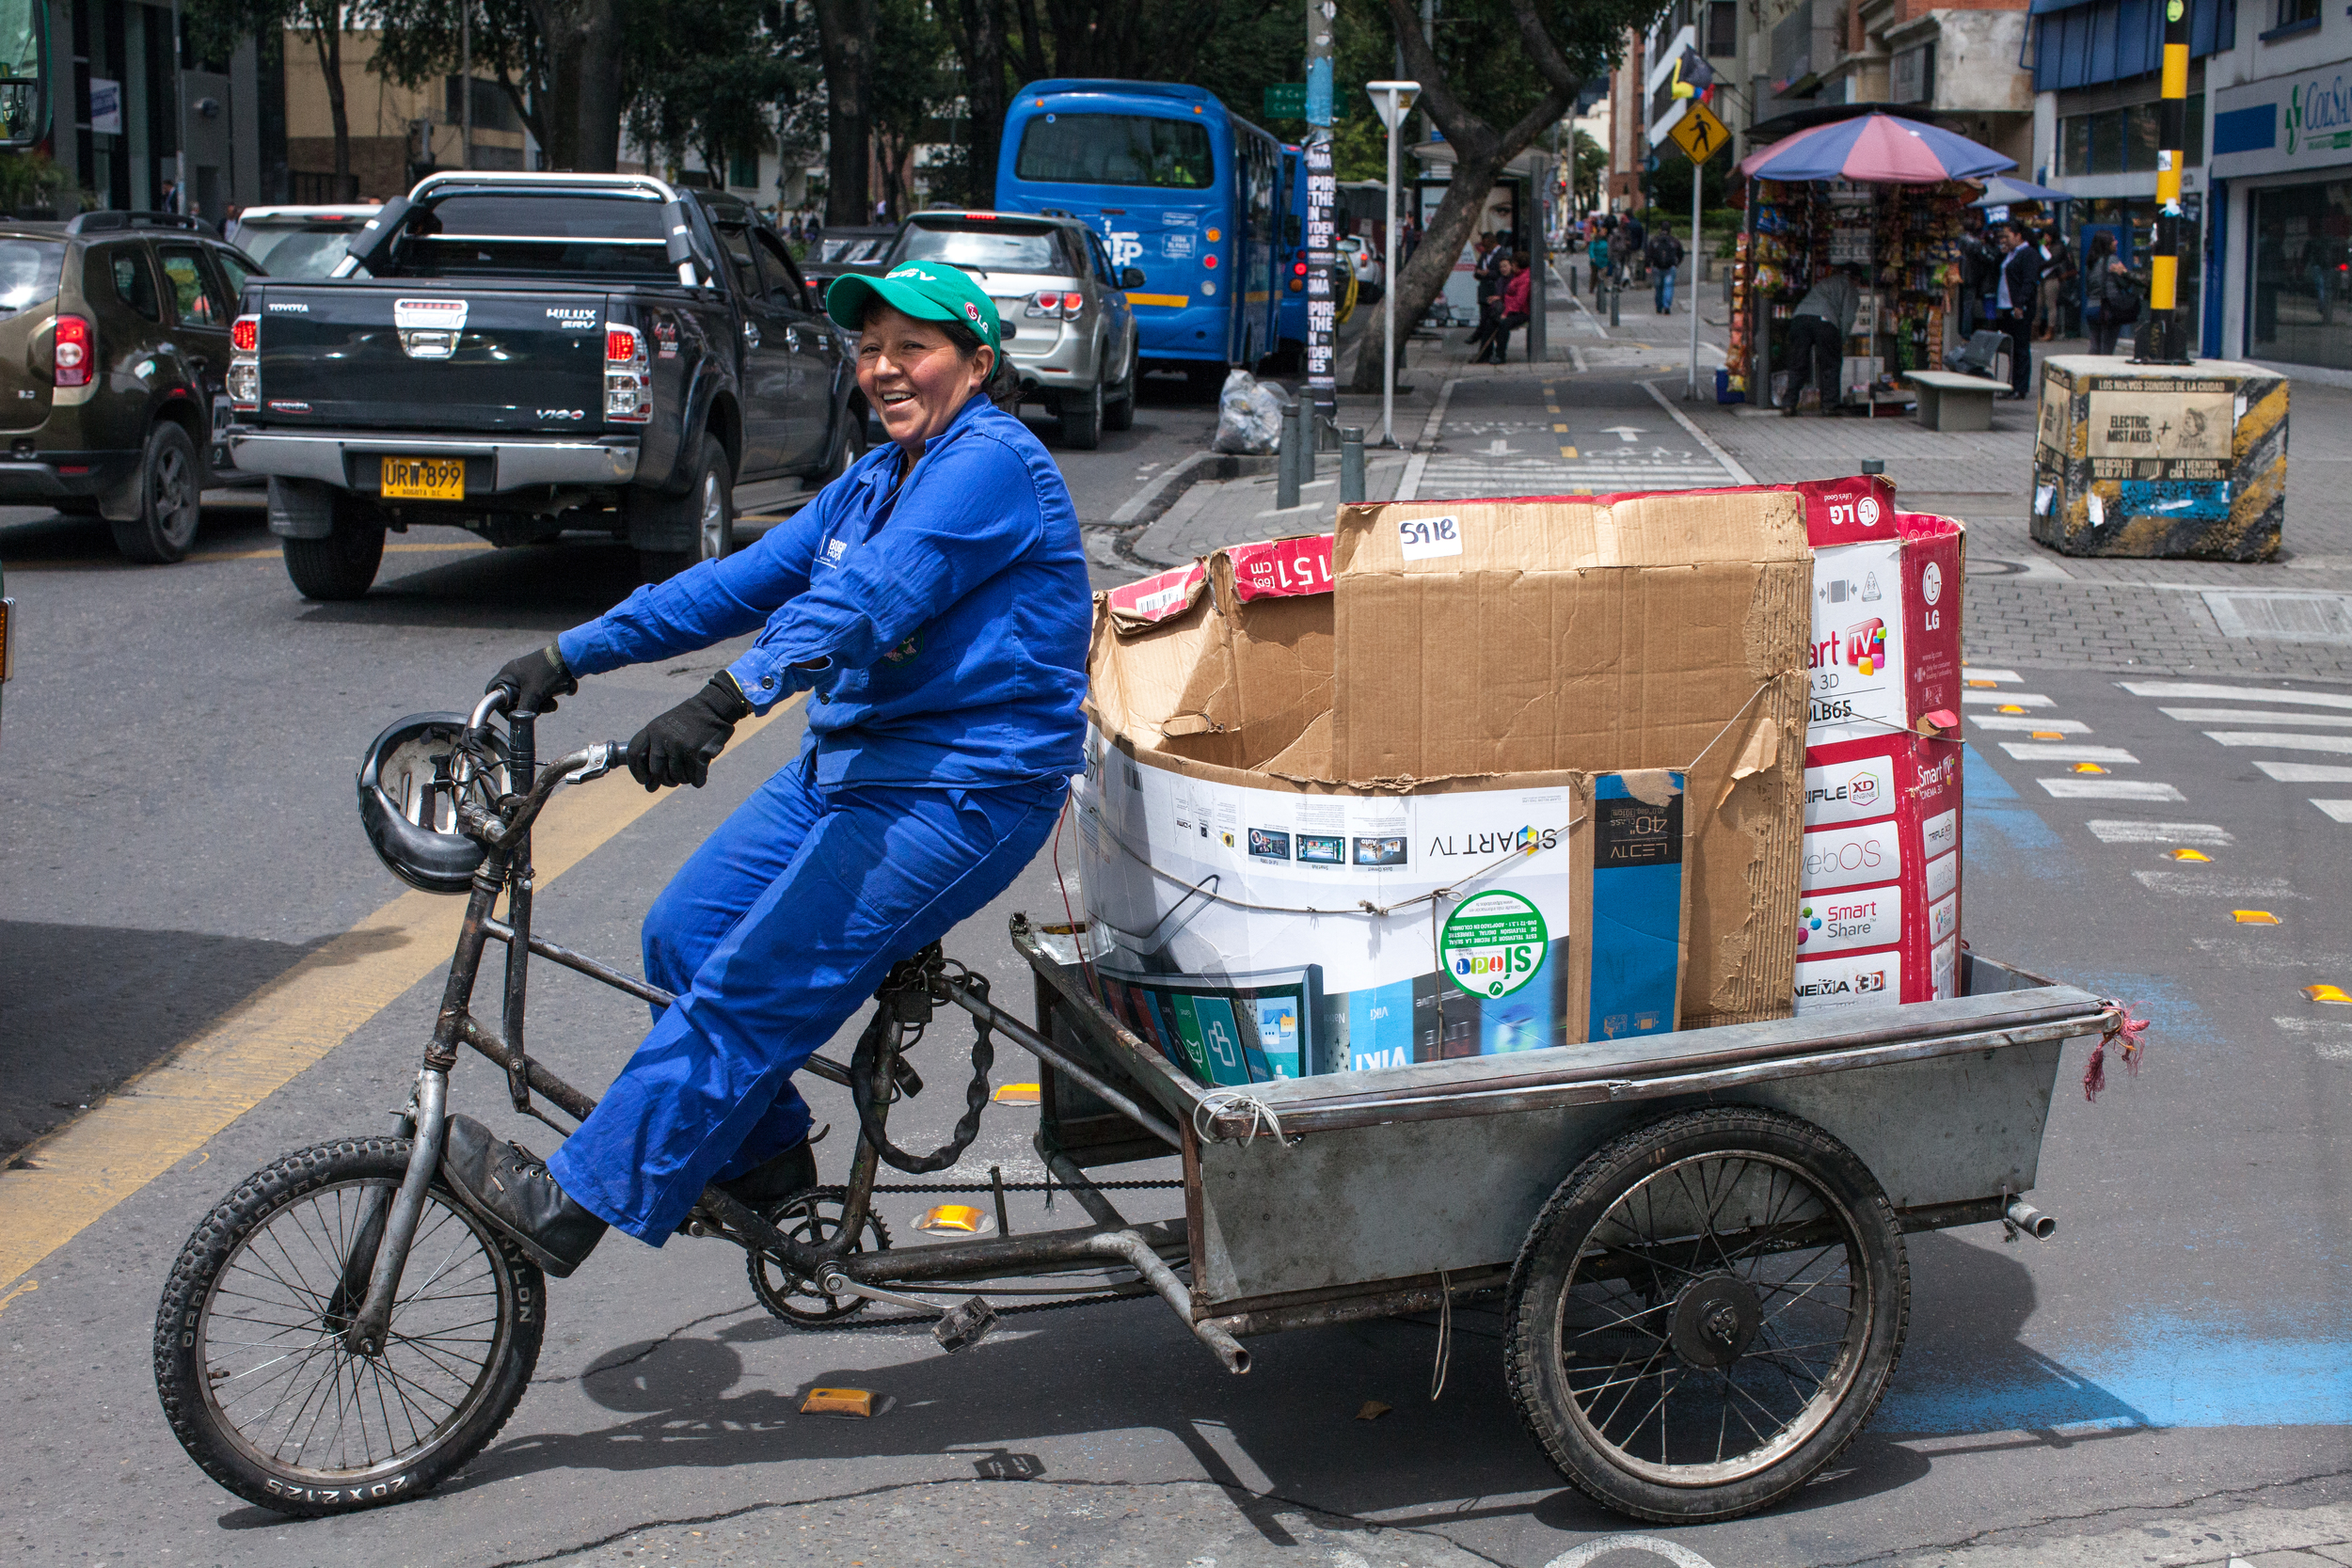 <p>Sonia Janeth Barriga, a waste picker member of Asochapinero—an affiliate of the Asociación de Recicladores de Bogotá (ARB), an organization of waste pickers' associations and cooperatives that advocates for waste pickers\' rights—transports recyclable materials with a tricycle. In this neighbourhood, Chapinero, she has negotiated with building administrators, neighbours, and hotel managers to be able to collect their recyclables. Being part of an organization has been instrumental to her success in these negotiations.  (Photo by Juan Arredondo/Reportage by Getty Images).</p>